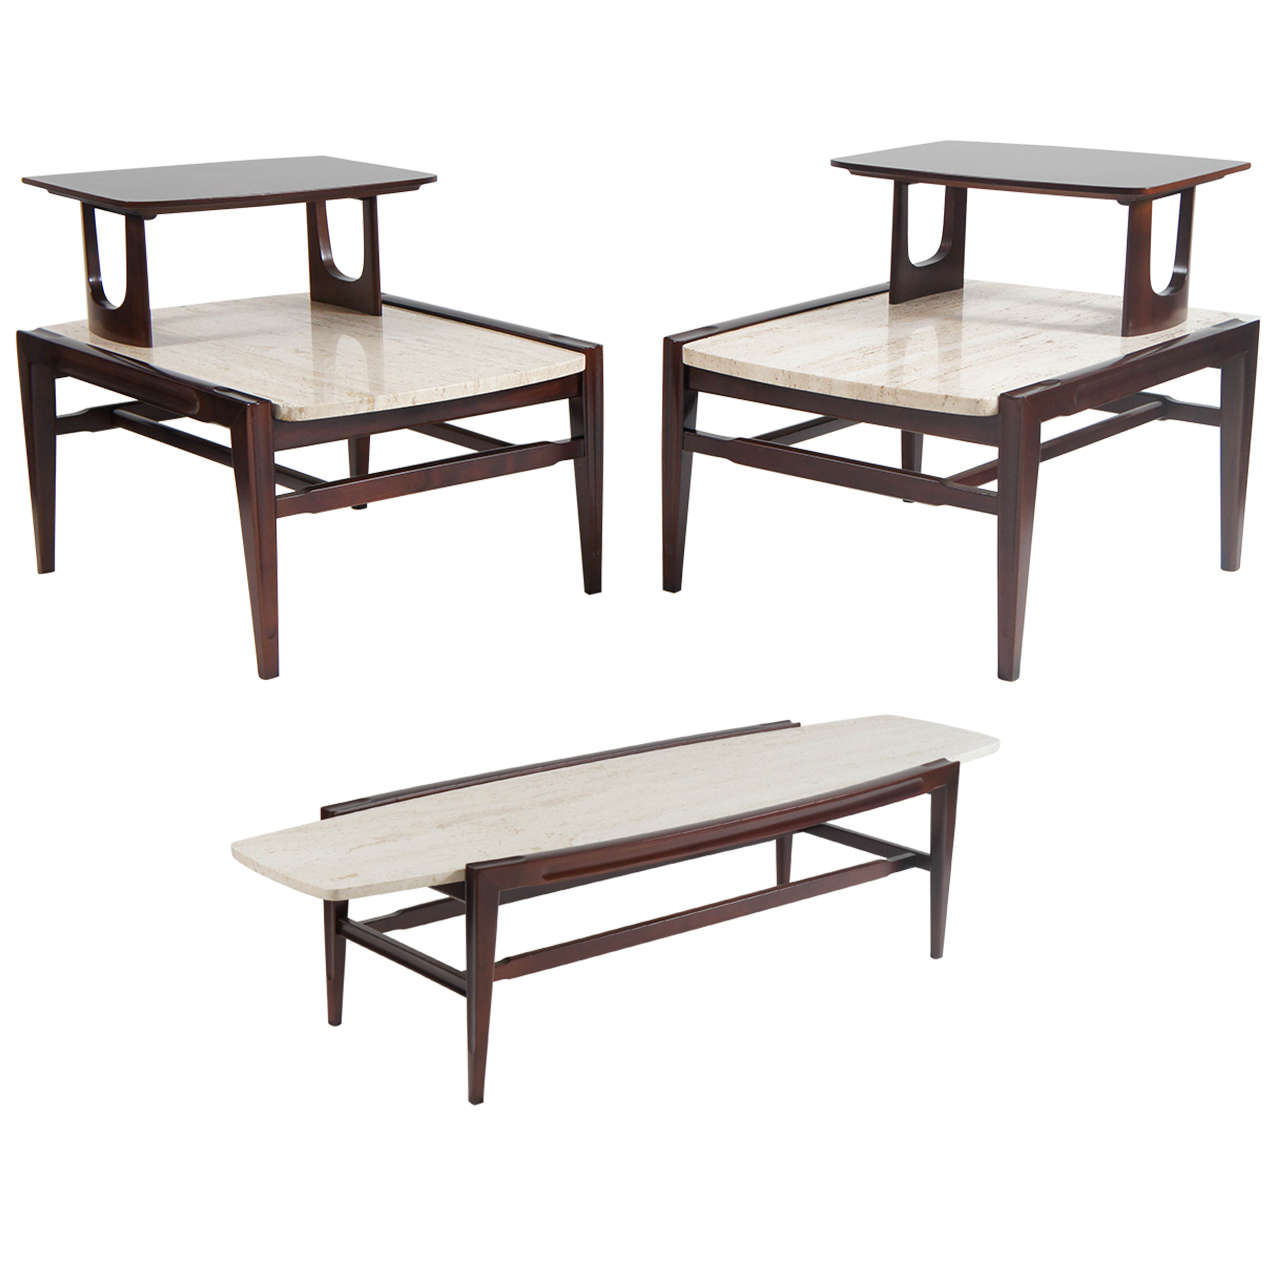 Living Room Side Tables For Sale Mid Century Modern Living Room Set Coffee And Two End